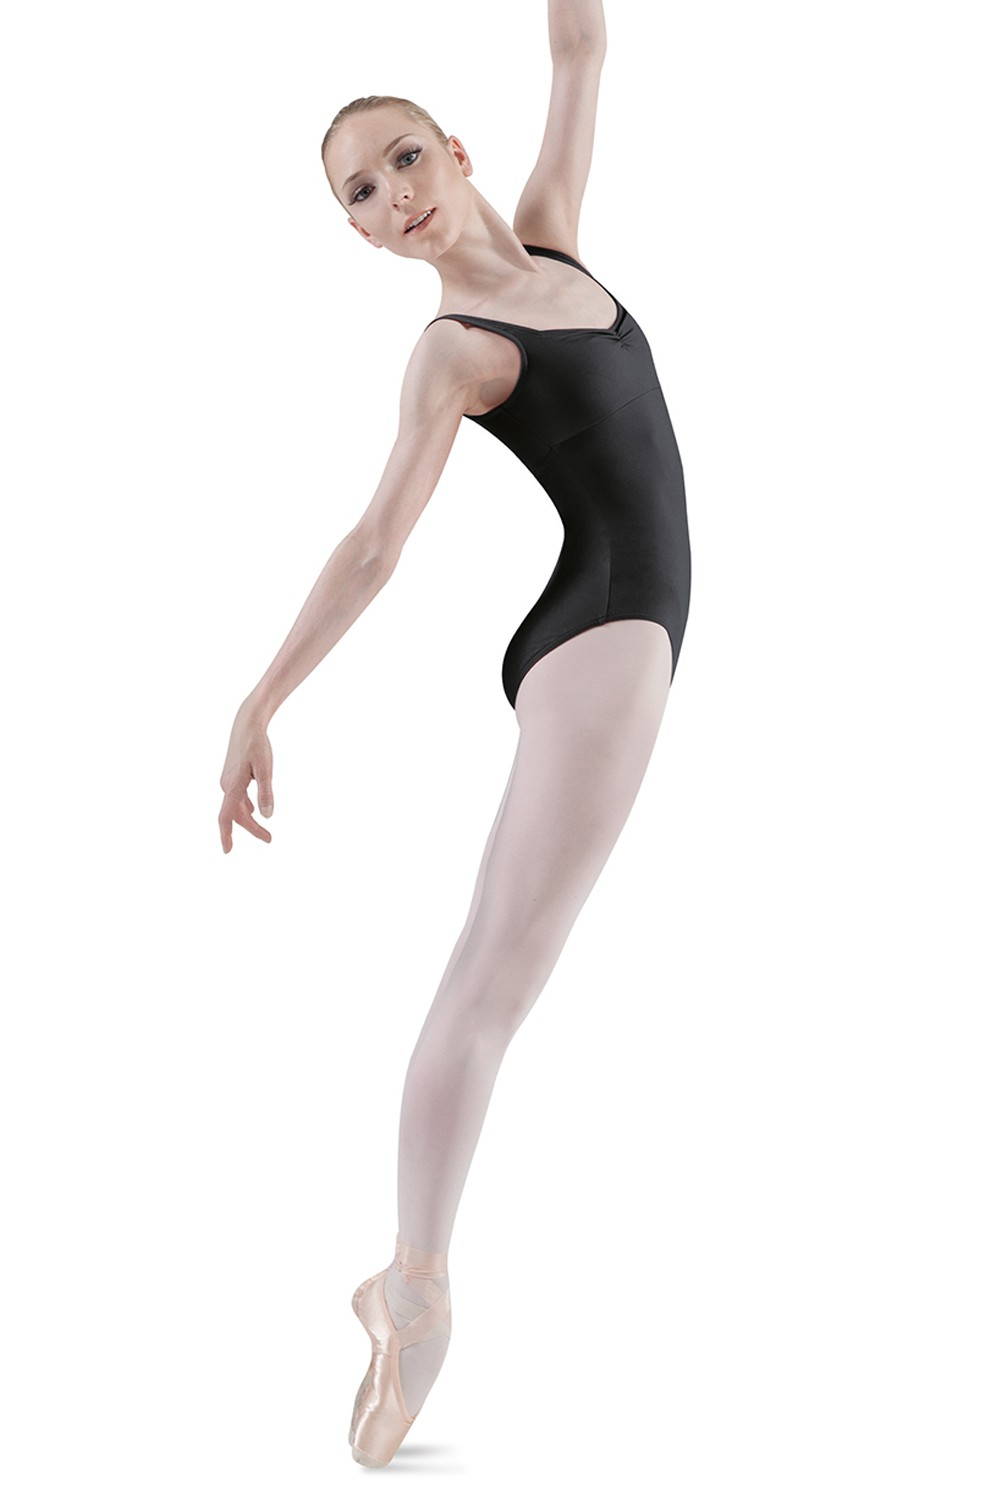 Plage Dritex Women's Dance Leotards